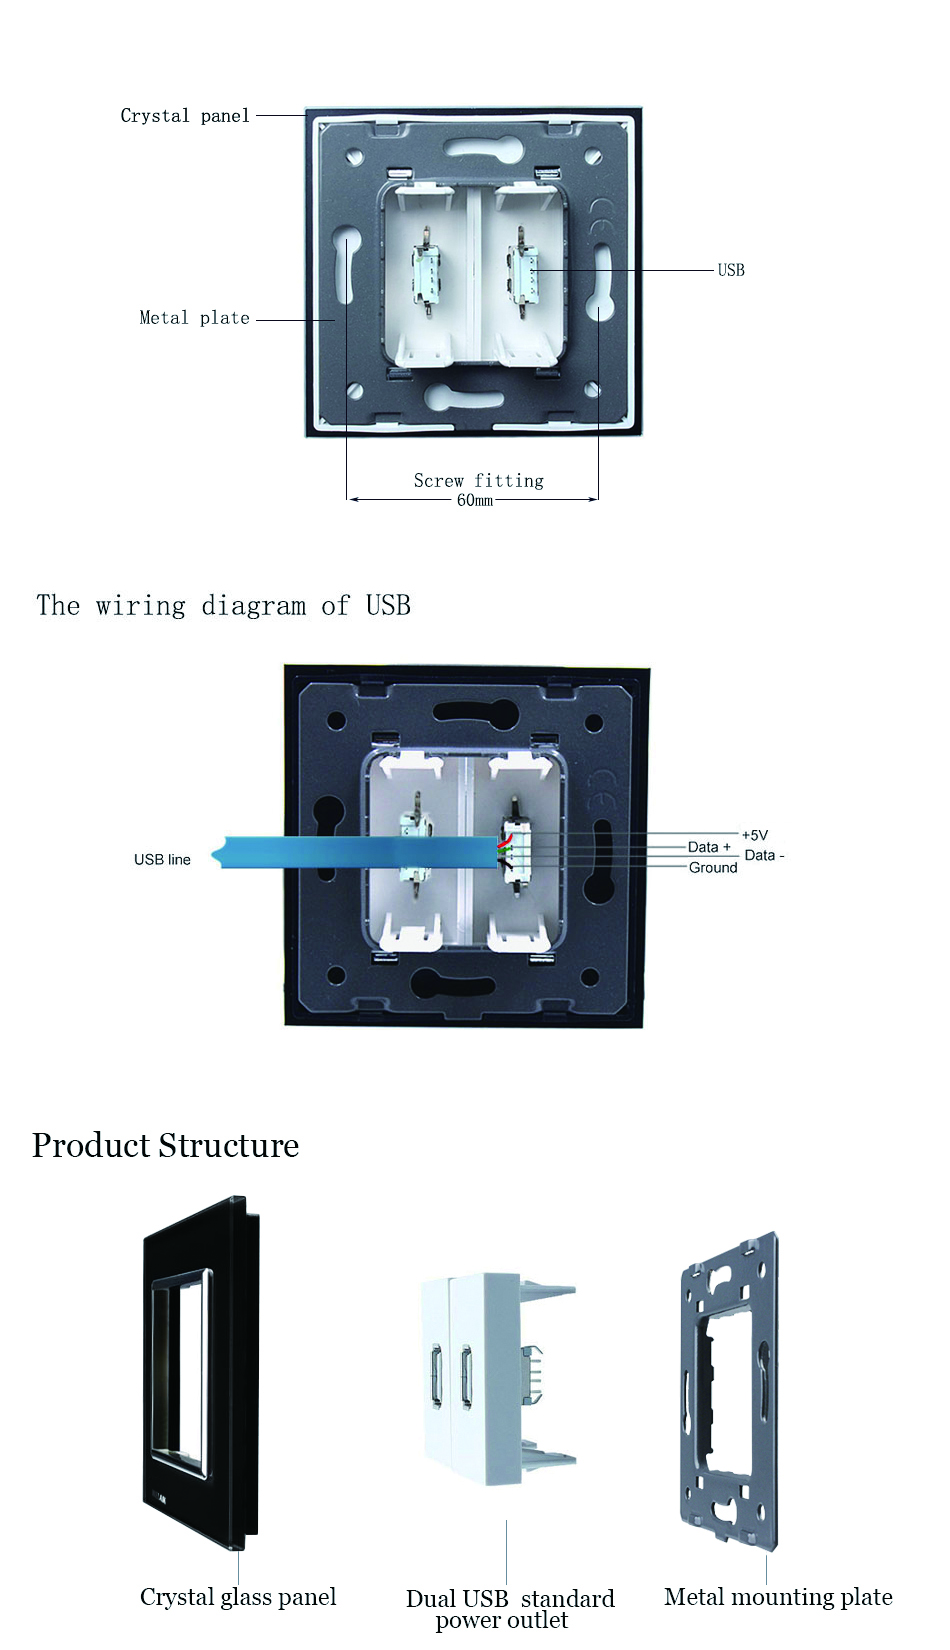 Welaik Free Shiping Crystal Glass Panel 1frame Eu Black Usb Socket Wiring Diagram Outlet Charging Power Supply A182usb